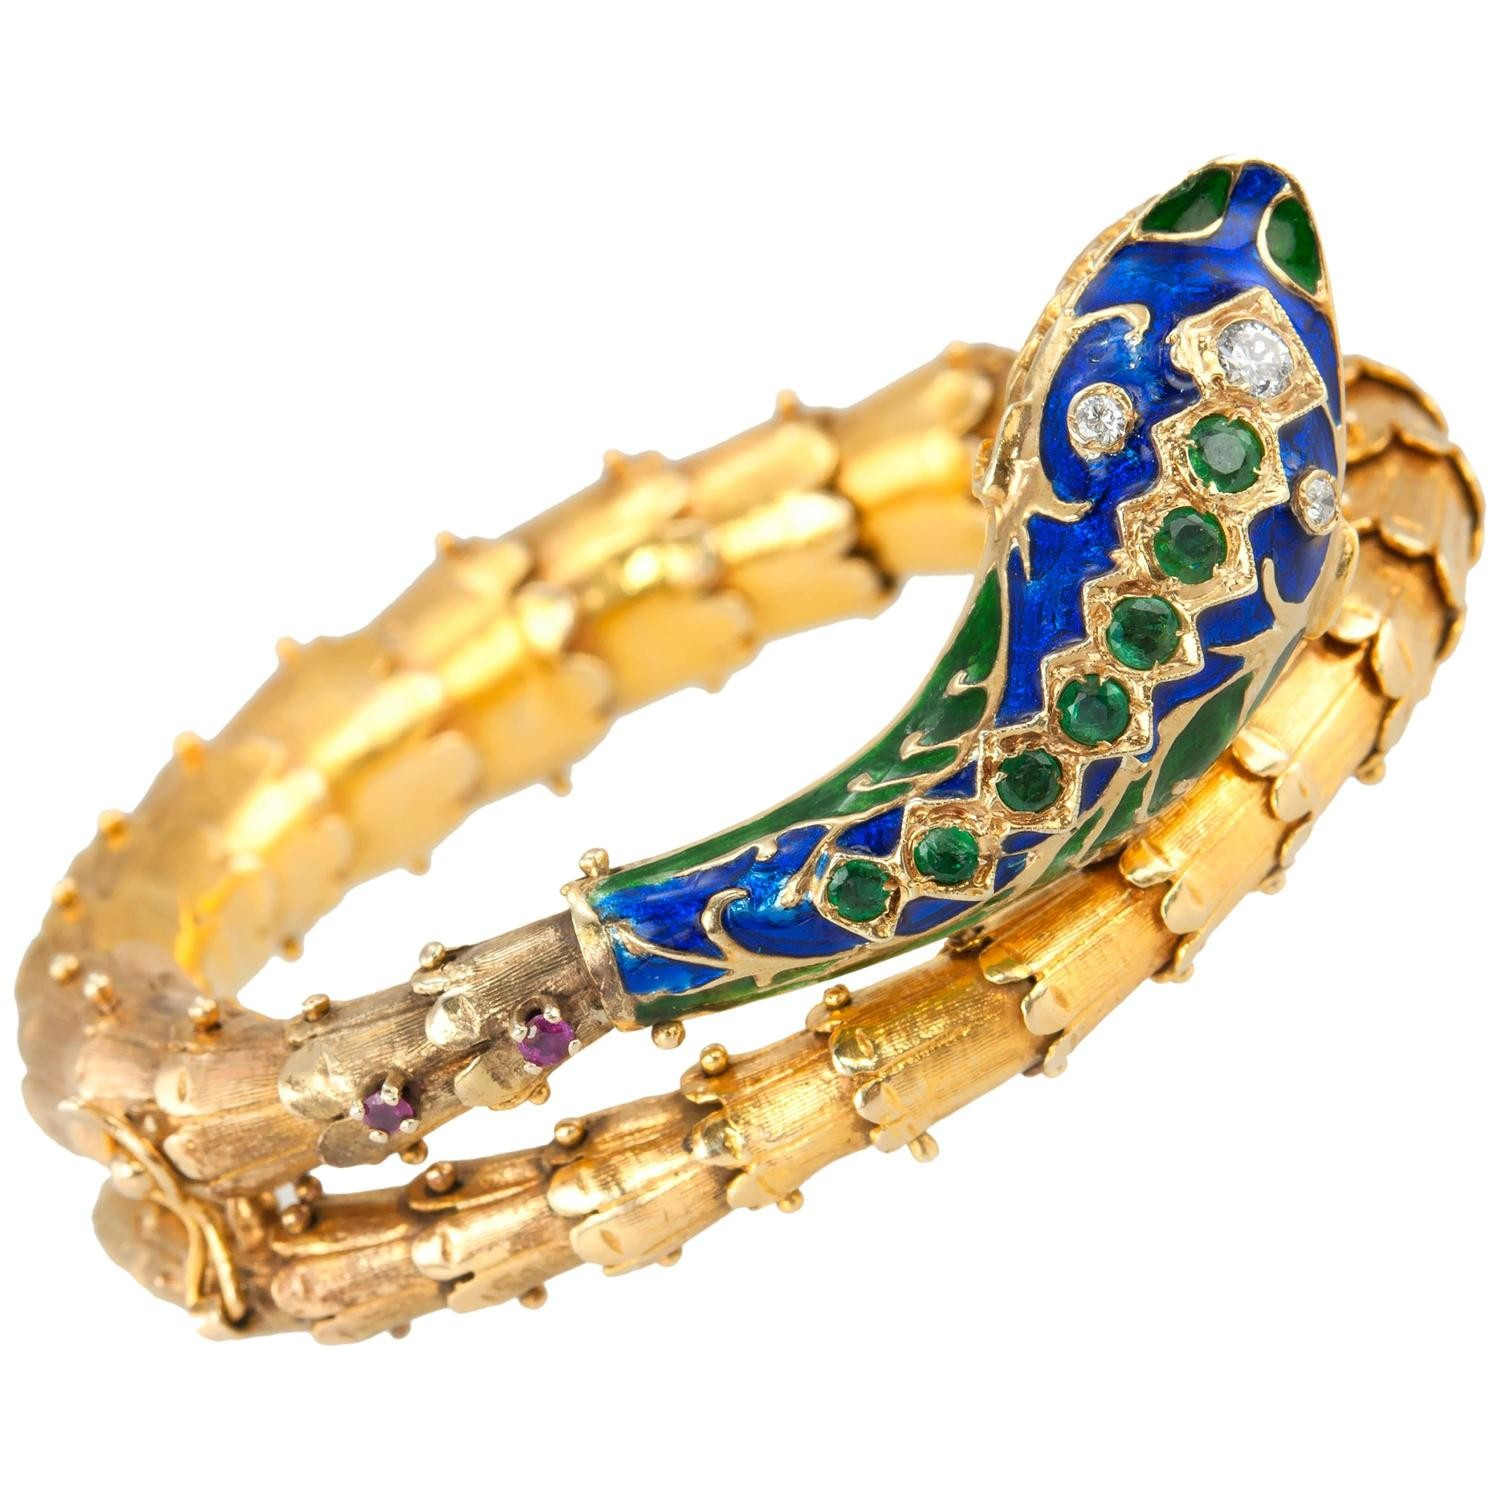 Gold and Enamel Snake Bracelet, Circa 1950s